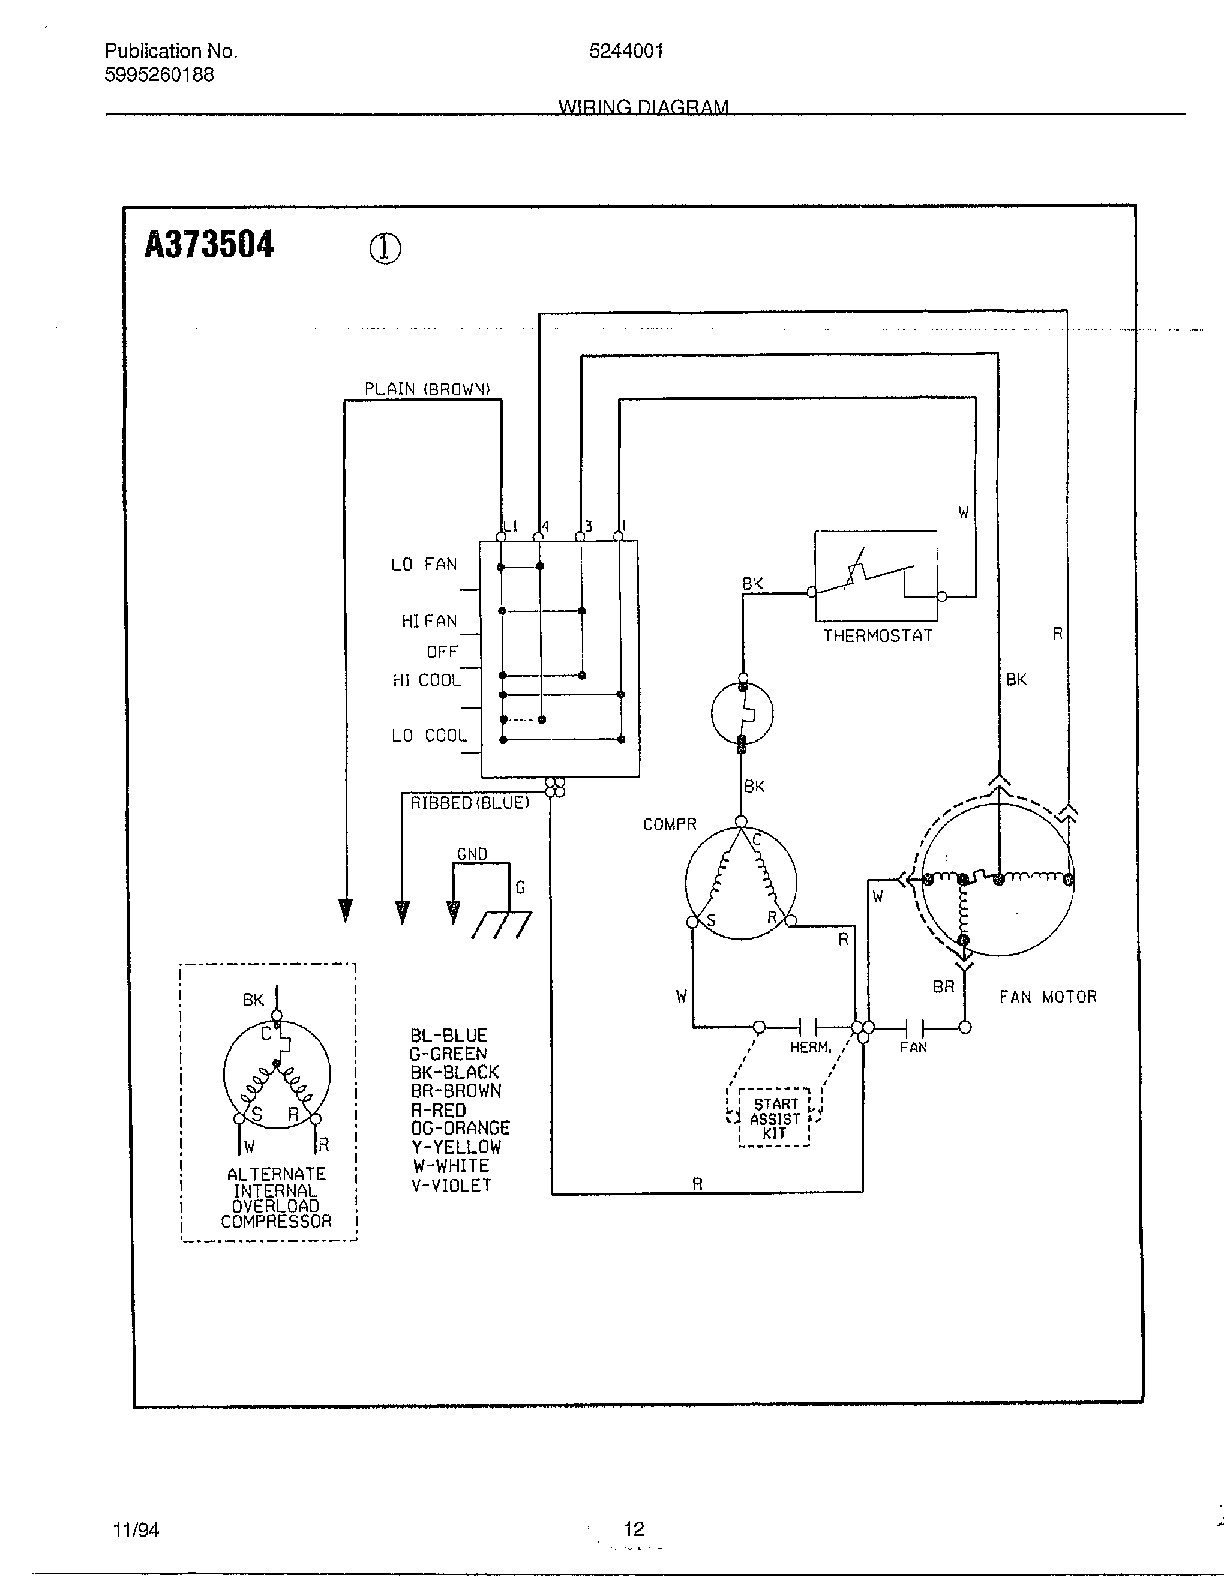 Car Ac Parts Diagram Awesome Car Air Conditioning System Wiring Diagram Contemporary Of Car Ac Parts Diagram